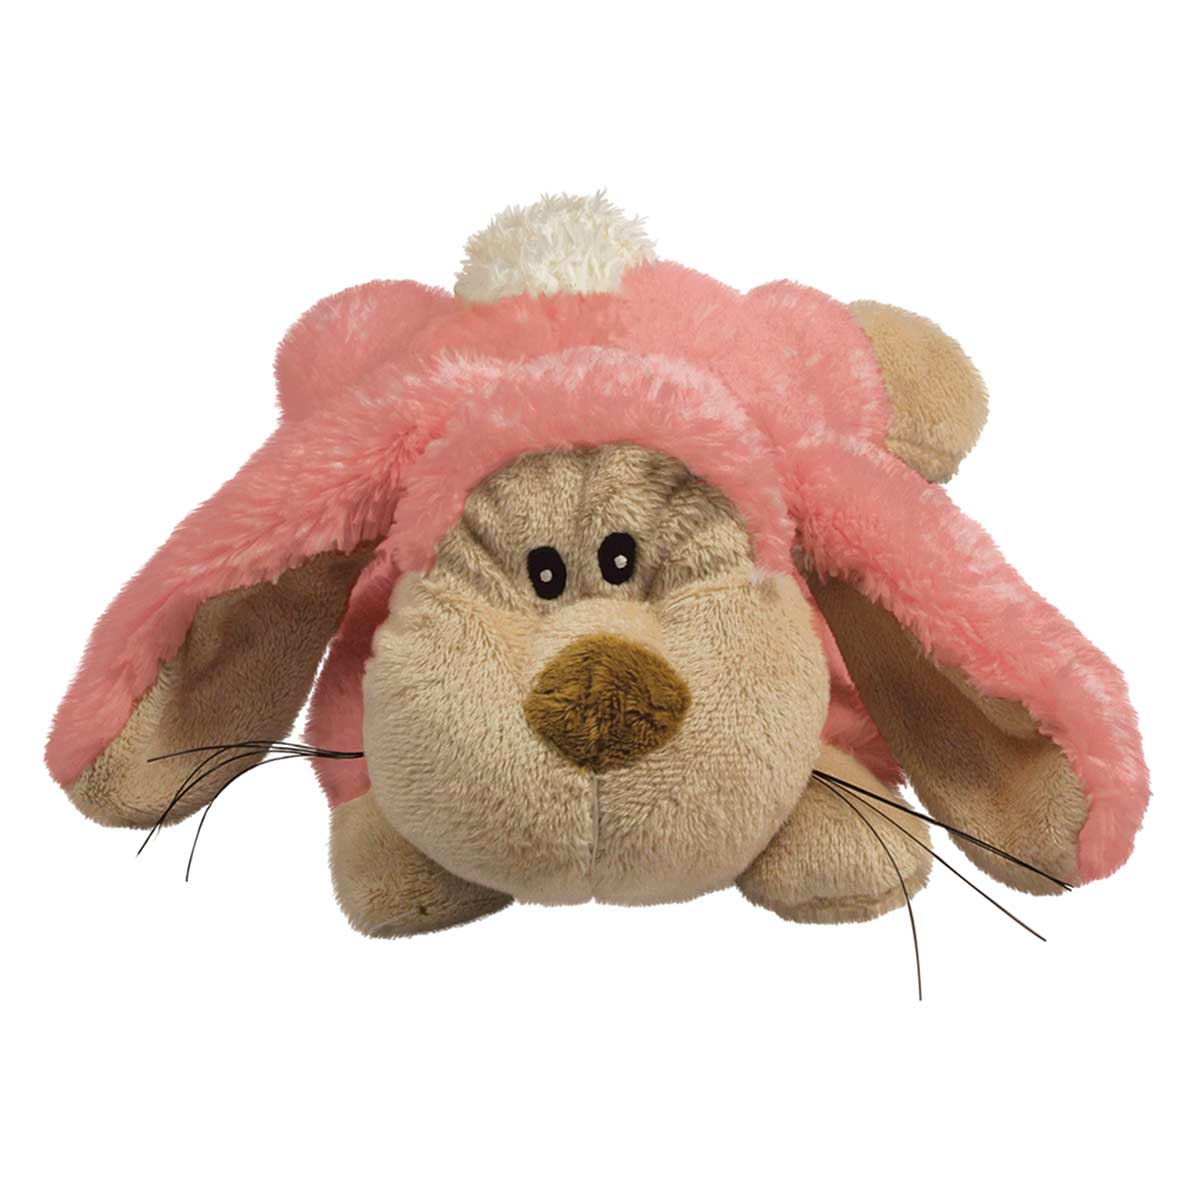 KONG Cozie Floppy Plush Bunny Dog Toy